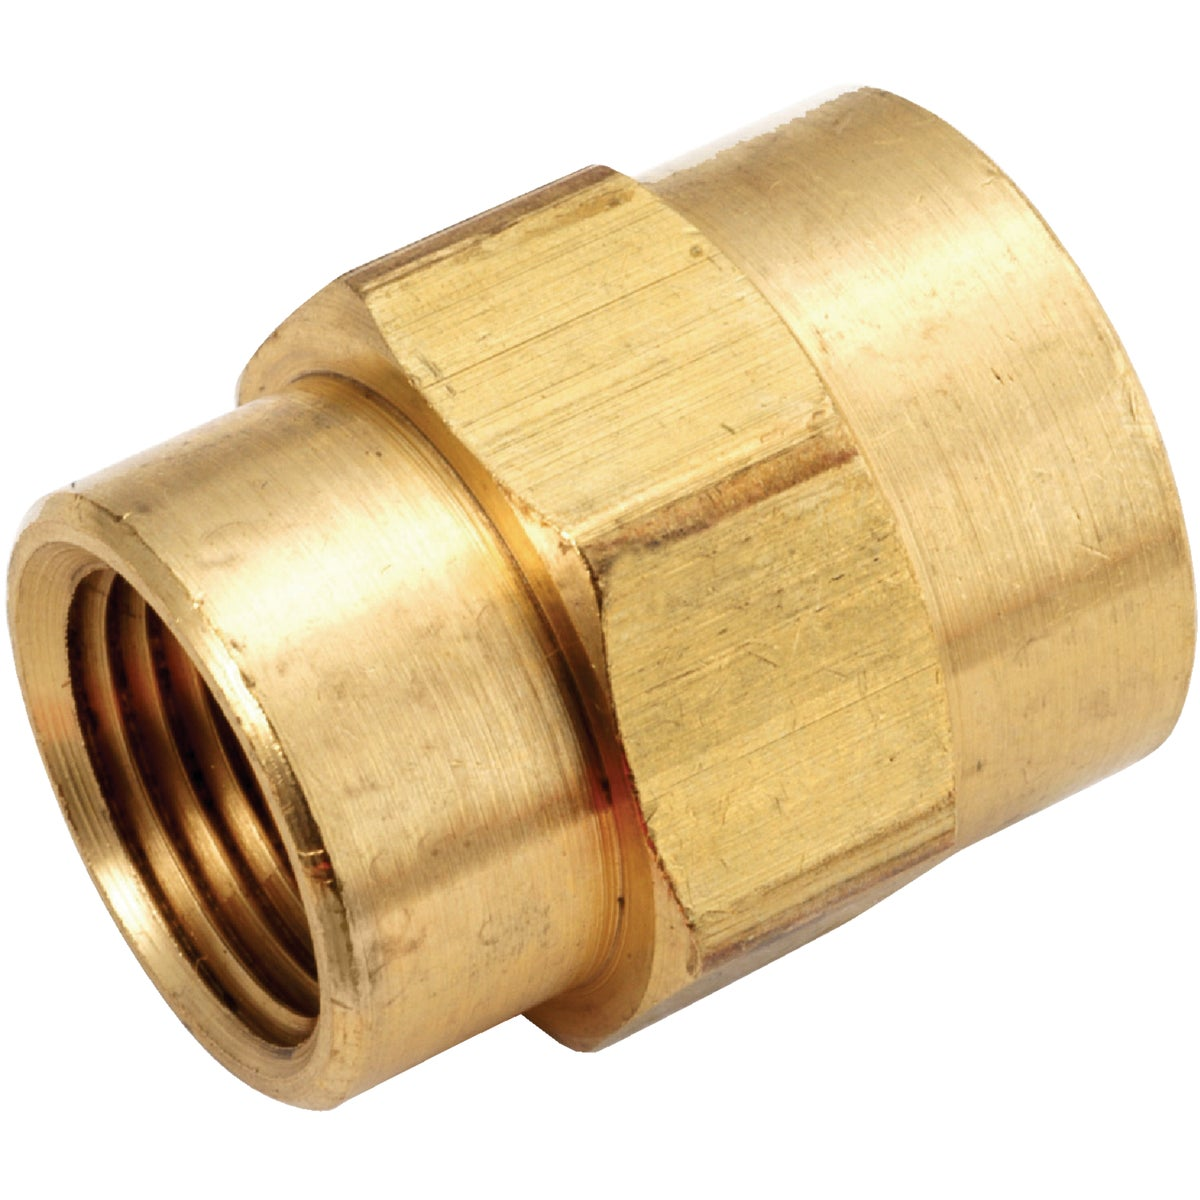 1/4X1/8 BRASS REDUC CPLN - 756119-0402 by Anderson Metals Corp